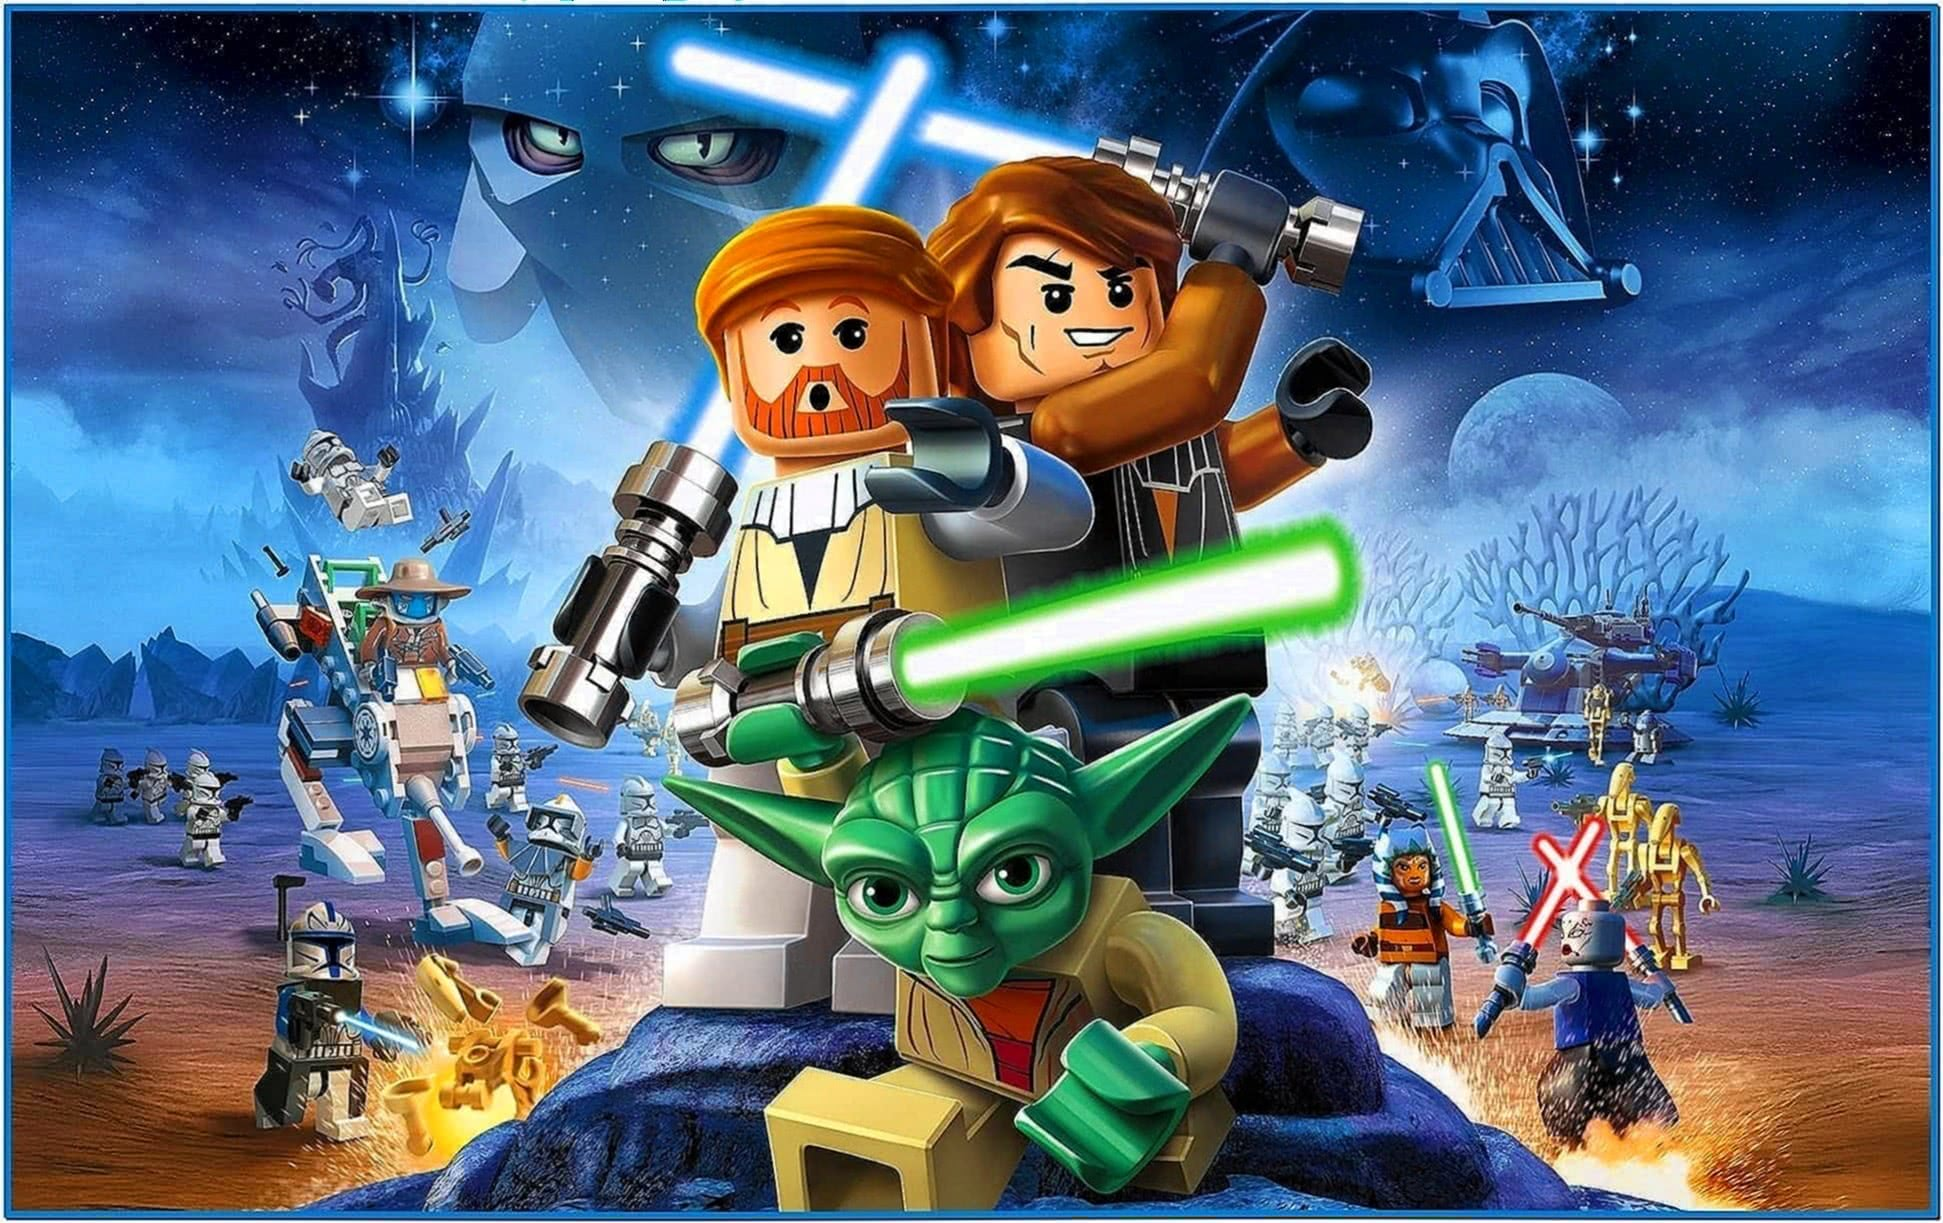 Lego Star Wars Screensaver